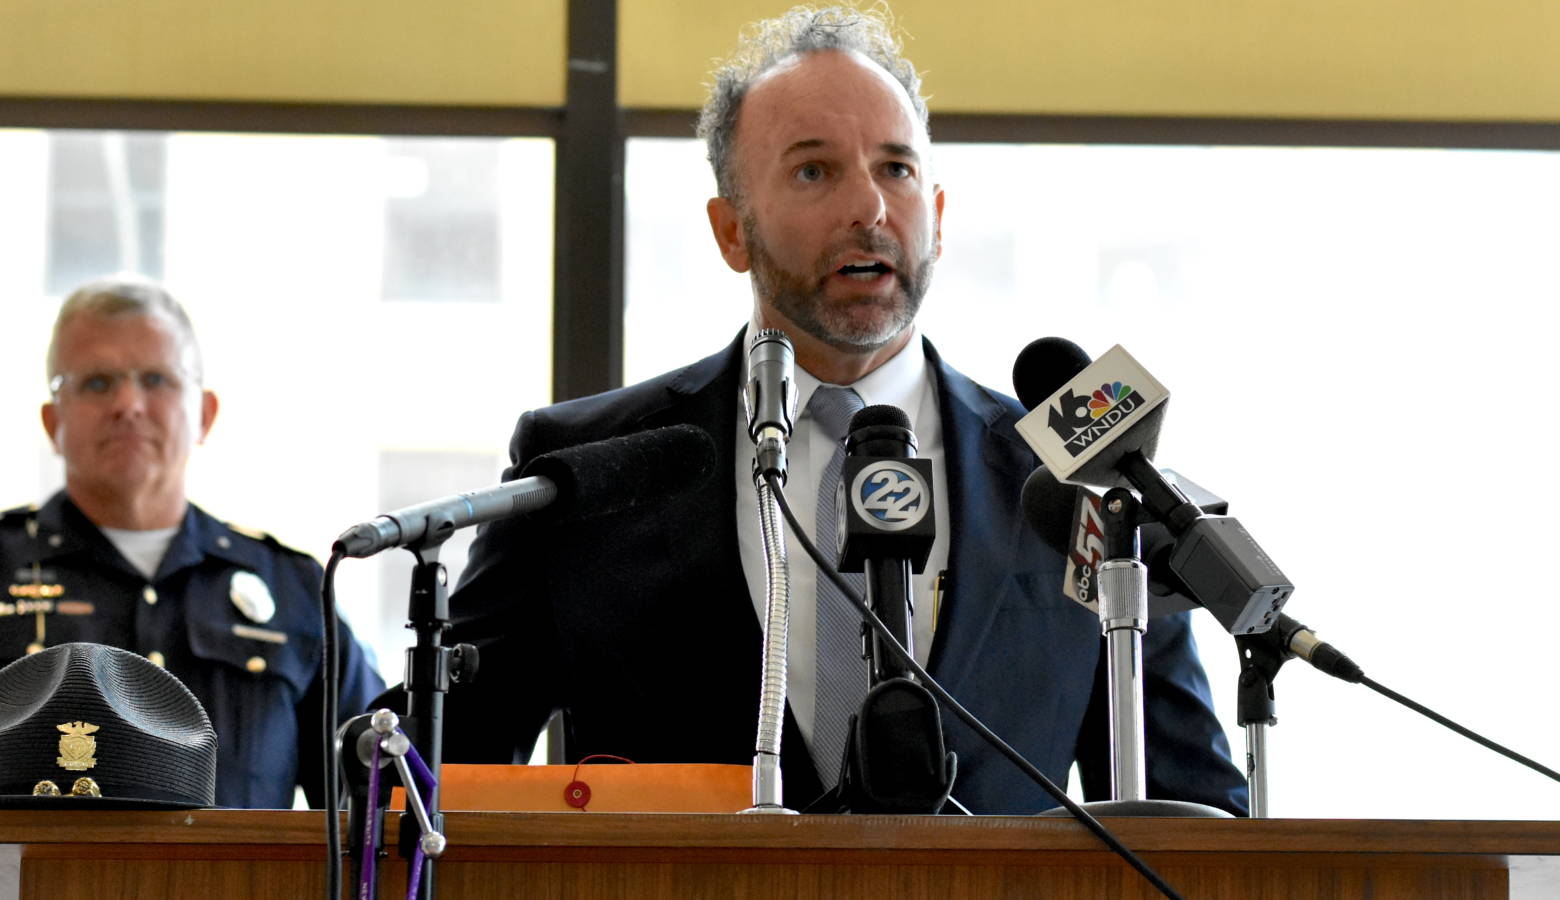 Richard Hertel is the special prosecutor appointed to investigate the June 16 police shooting death of Eric Logan. (Justin Hicks/IPB News)